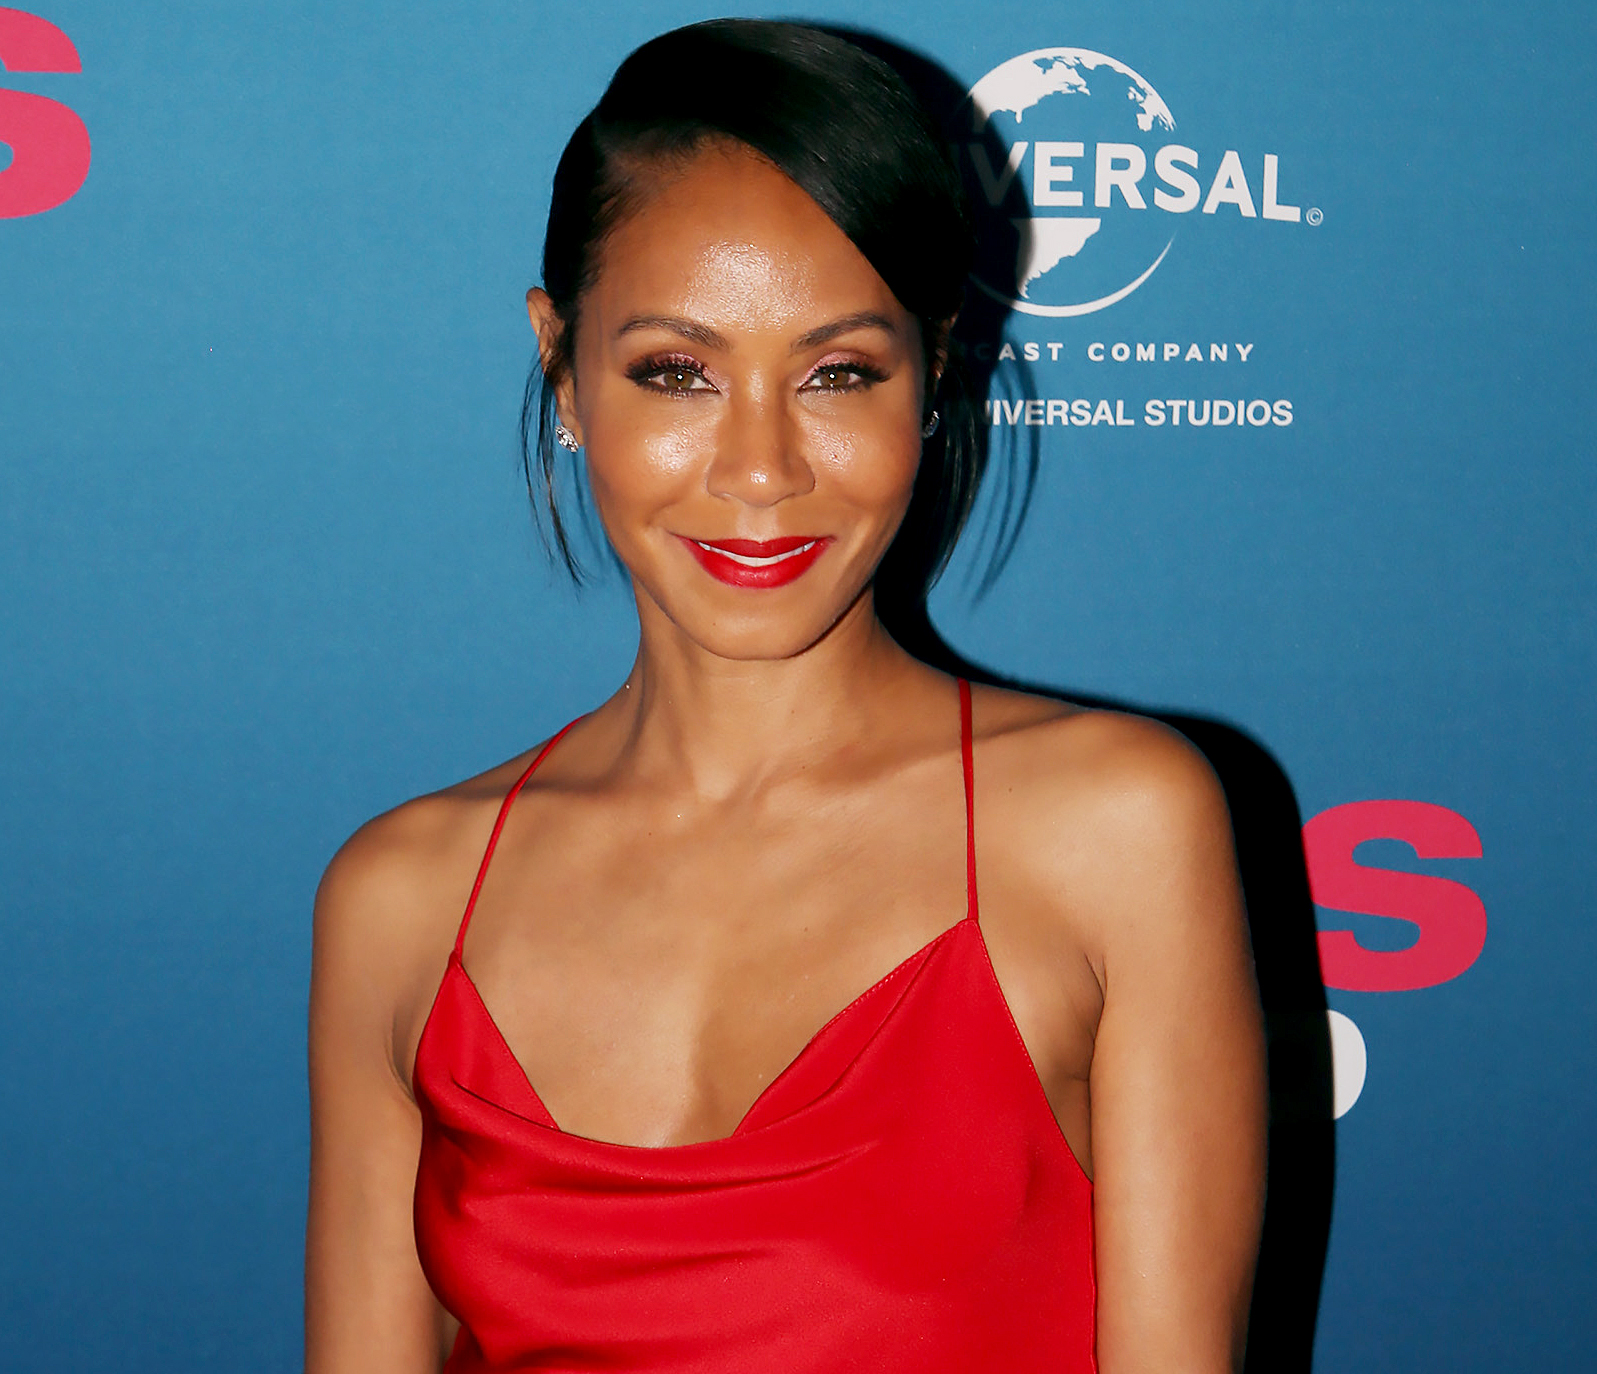 Jada Pinkett Smith battled sex addiction when she was younger